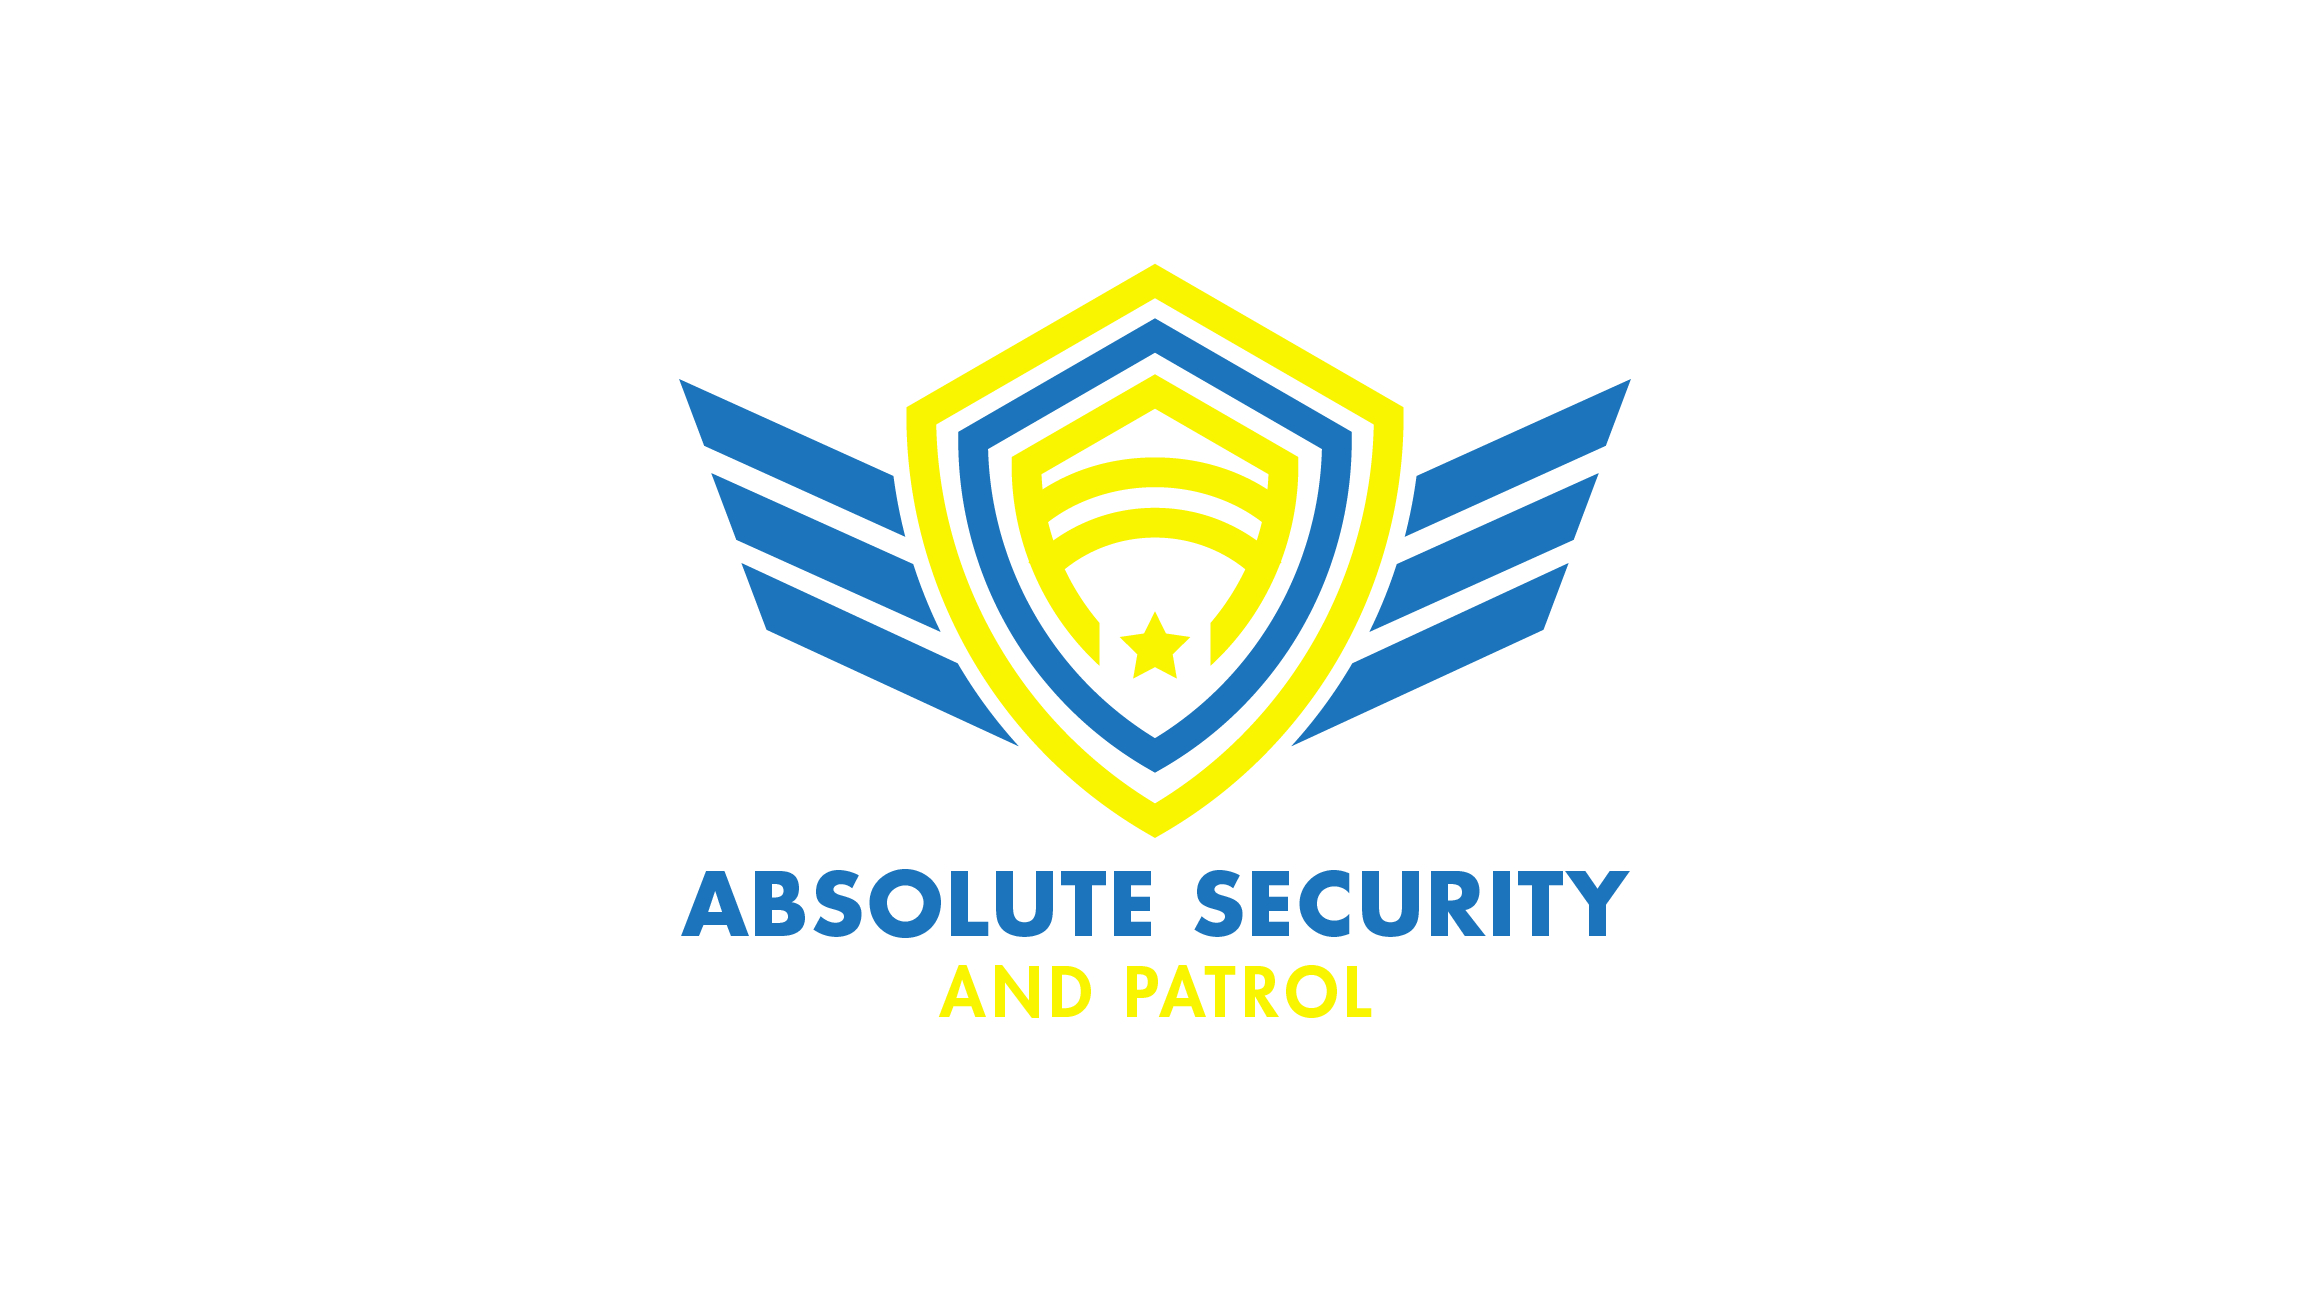 Absolute Security and Patrol, Announces New Service Area in Fort Worth, Texas